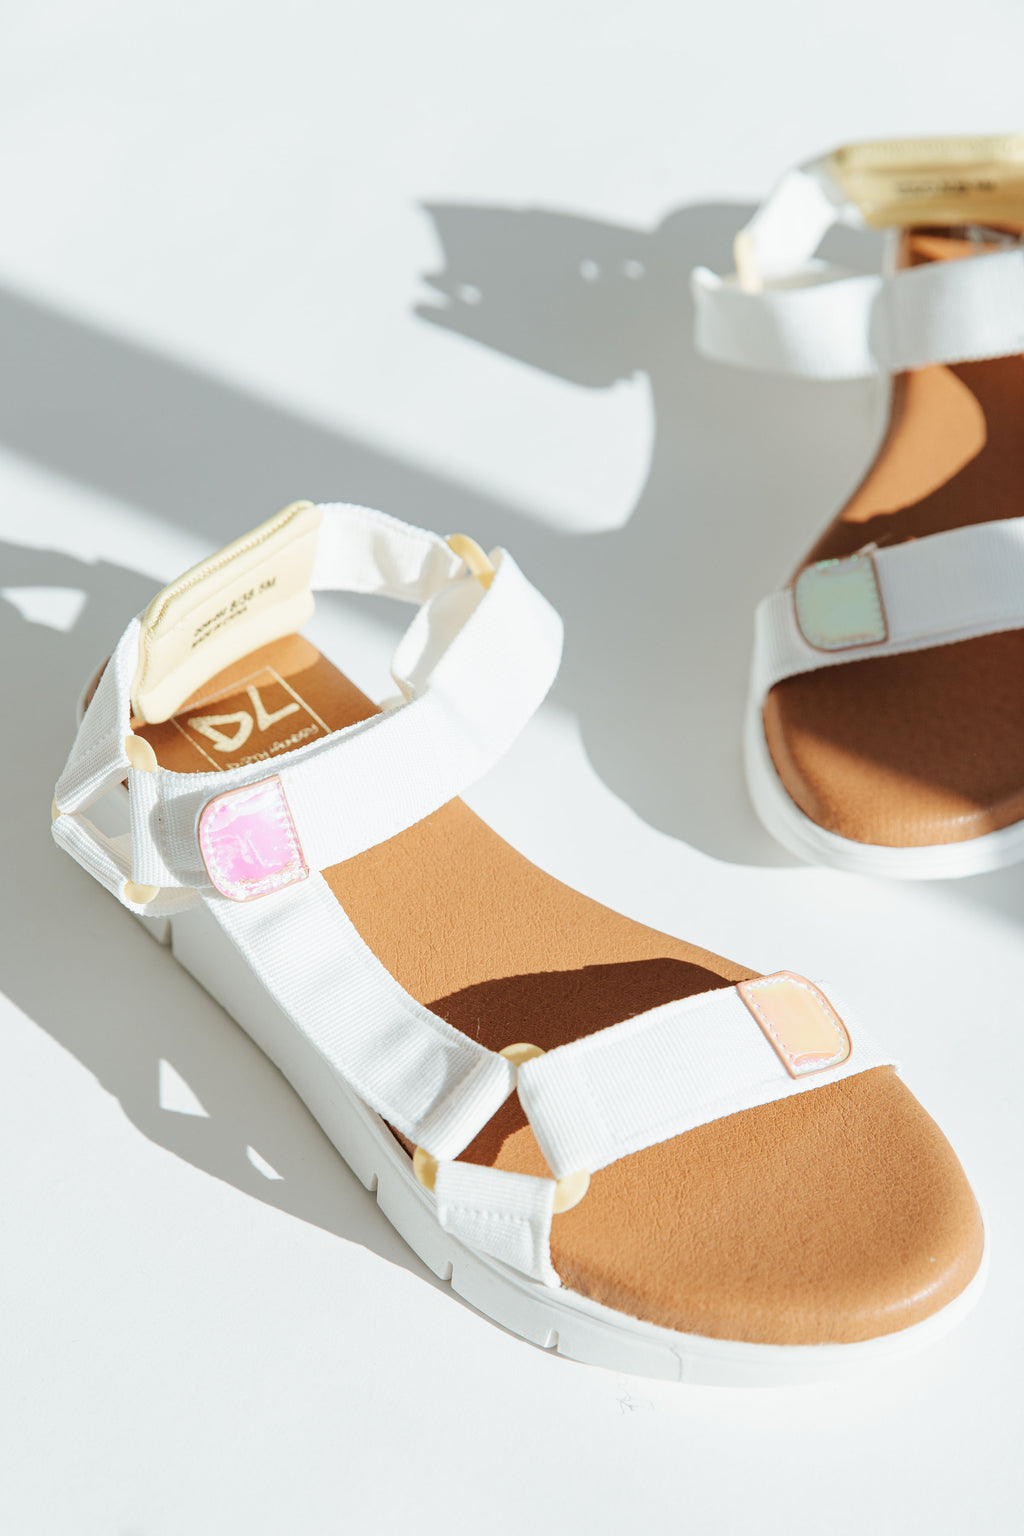 Chinese Laundry: The Qwest Strap Sandal in White, studio shoot; side view